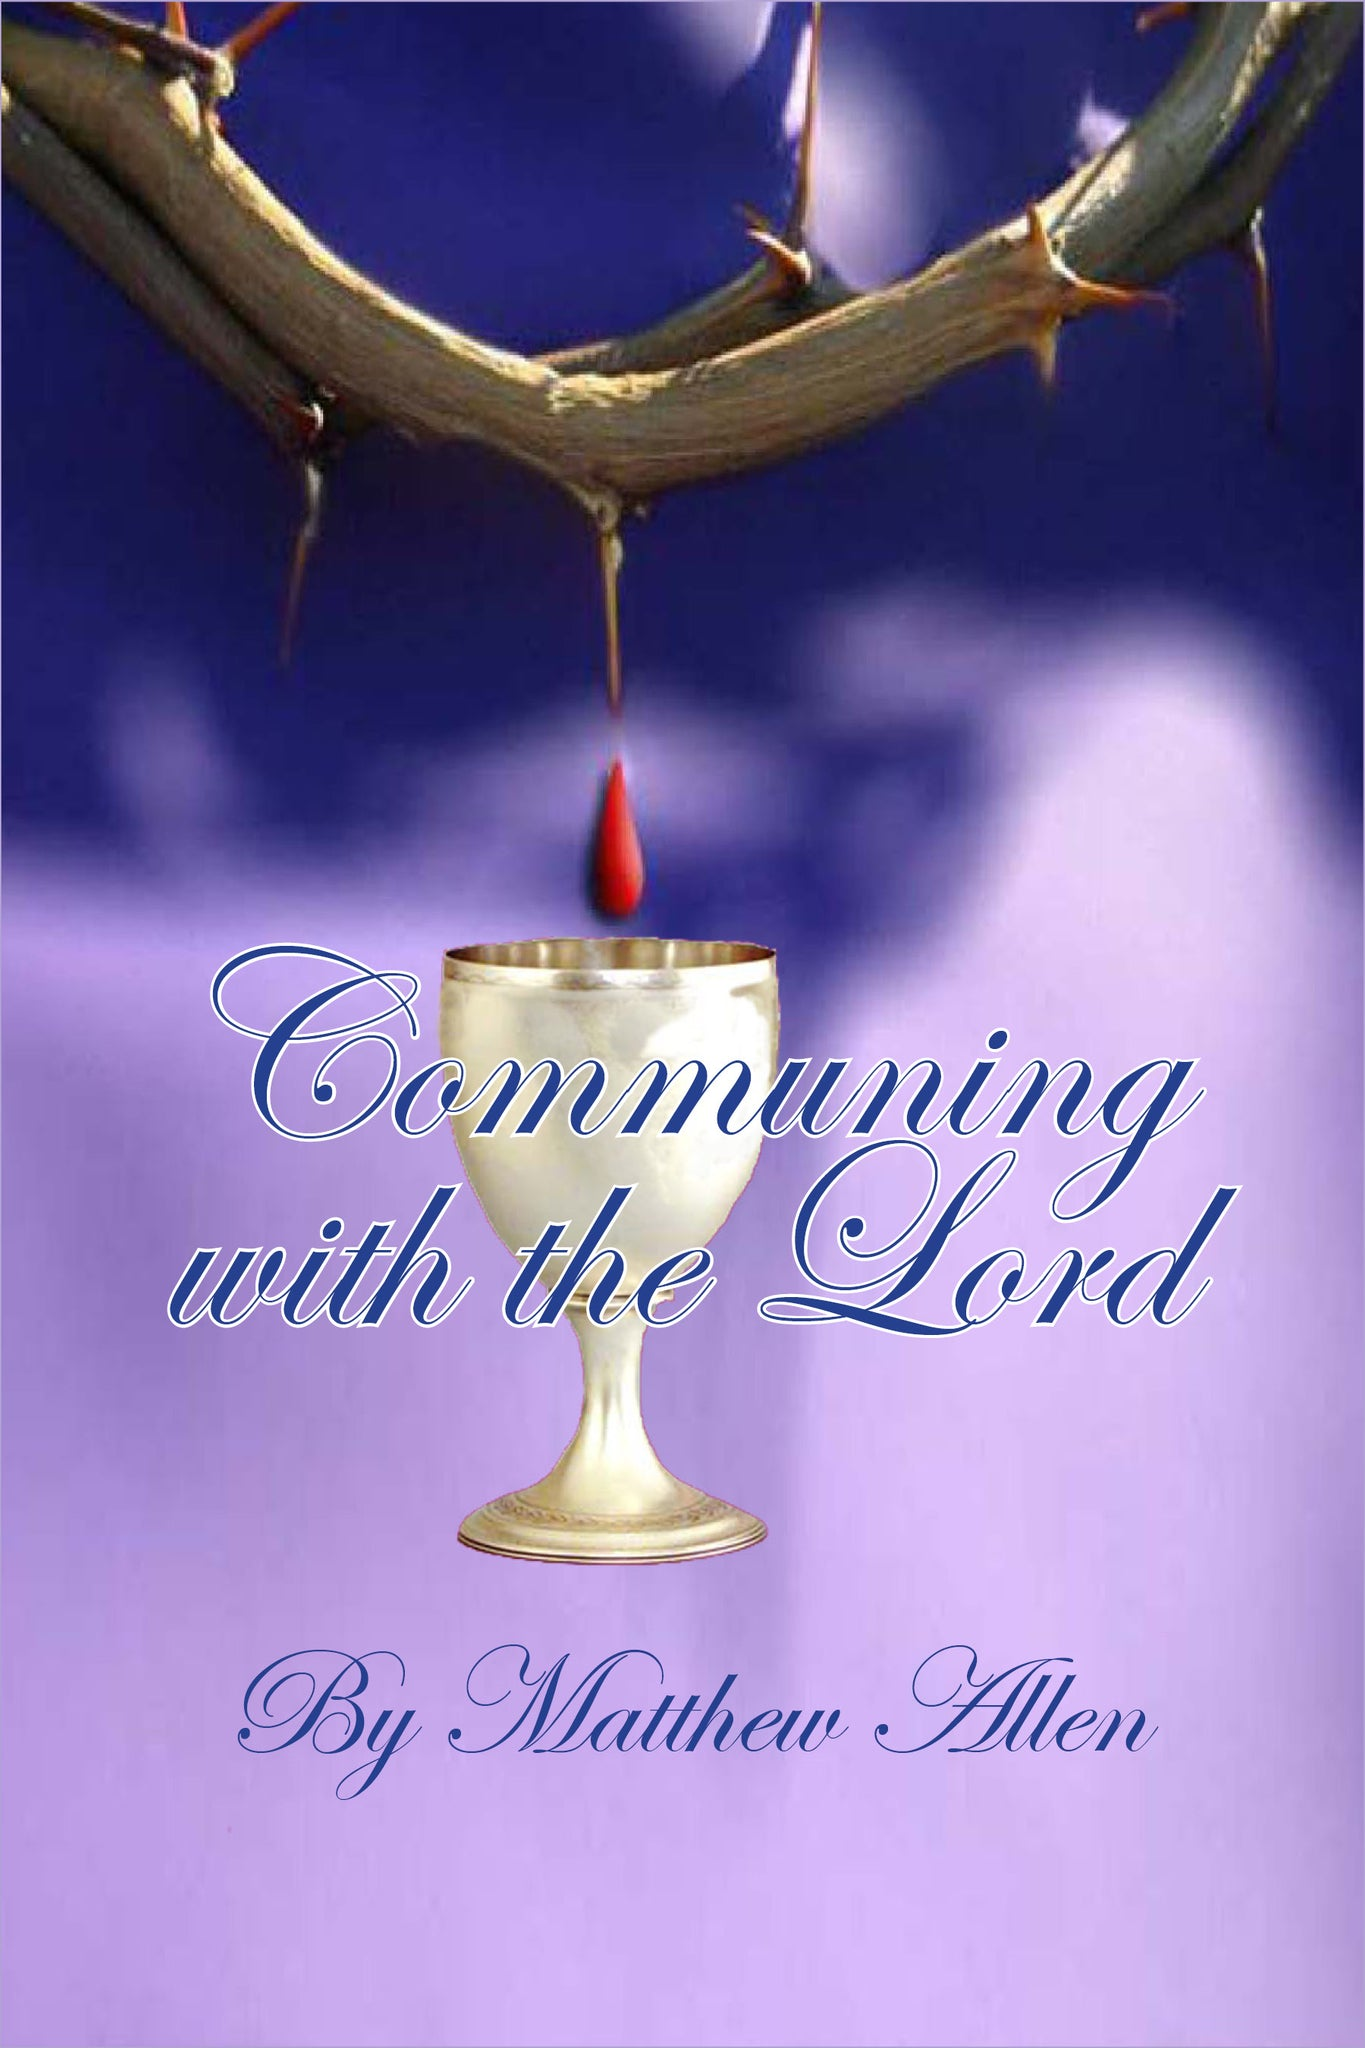 Communing With the Lord